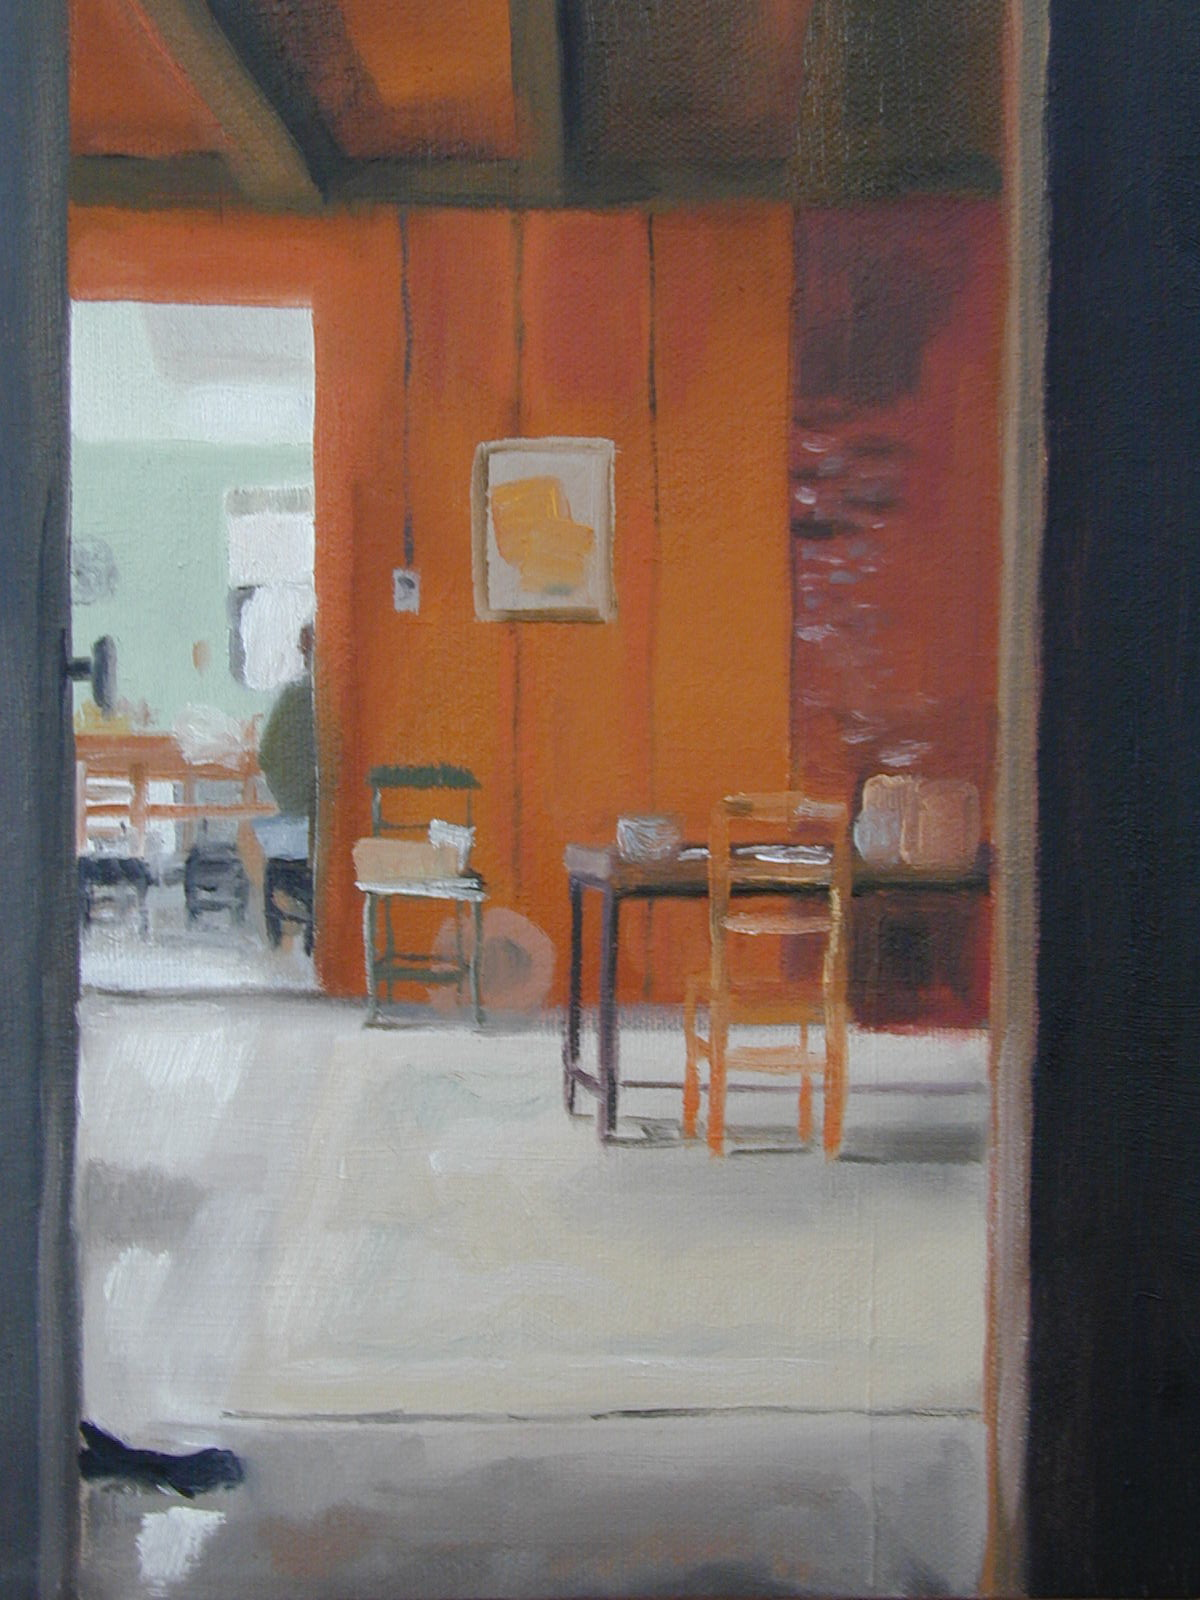 Dining room into the kitchen. 10x8 inches, oil on canvas (sold)